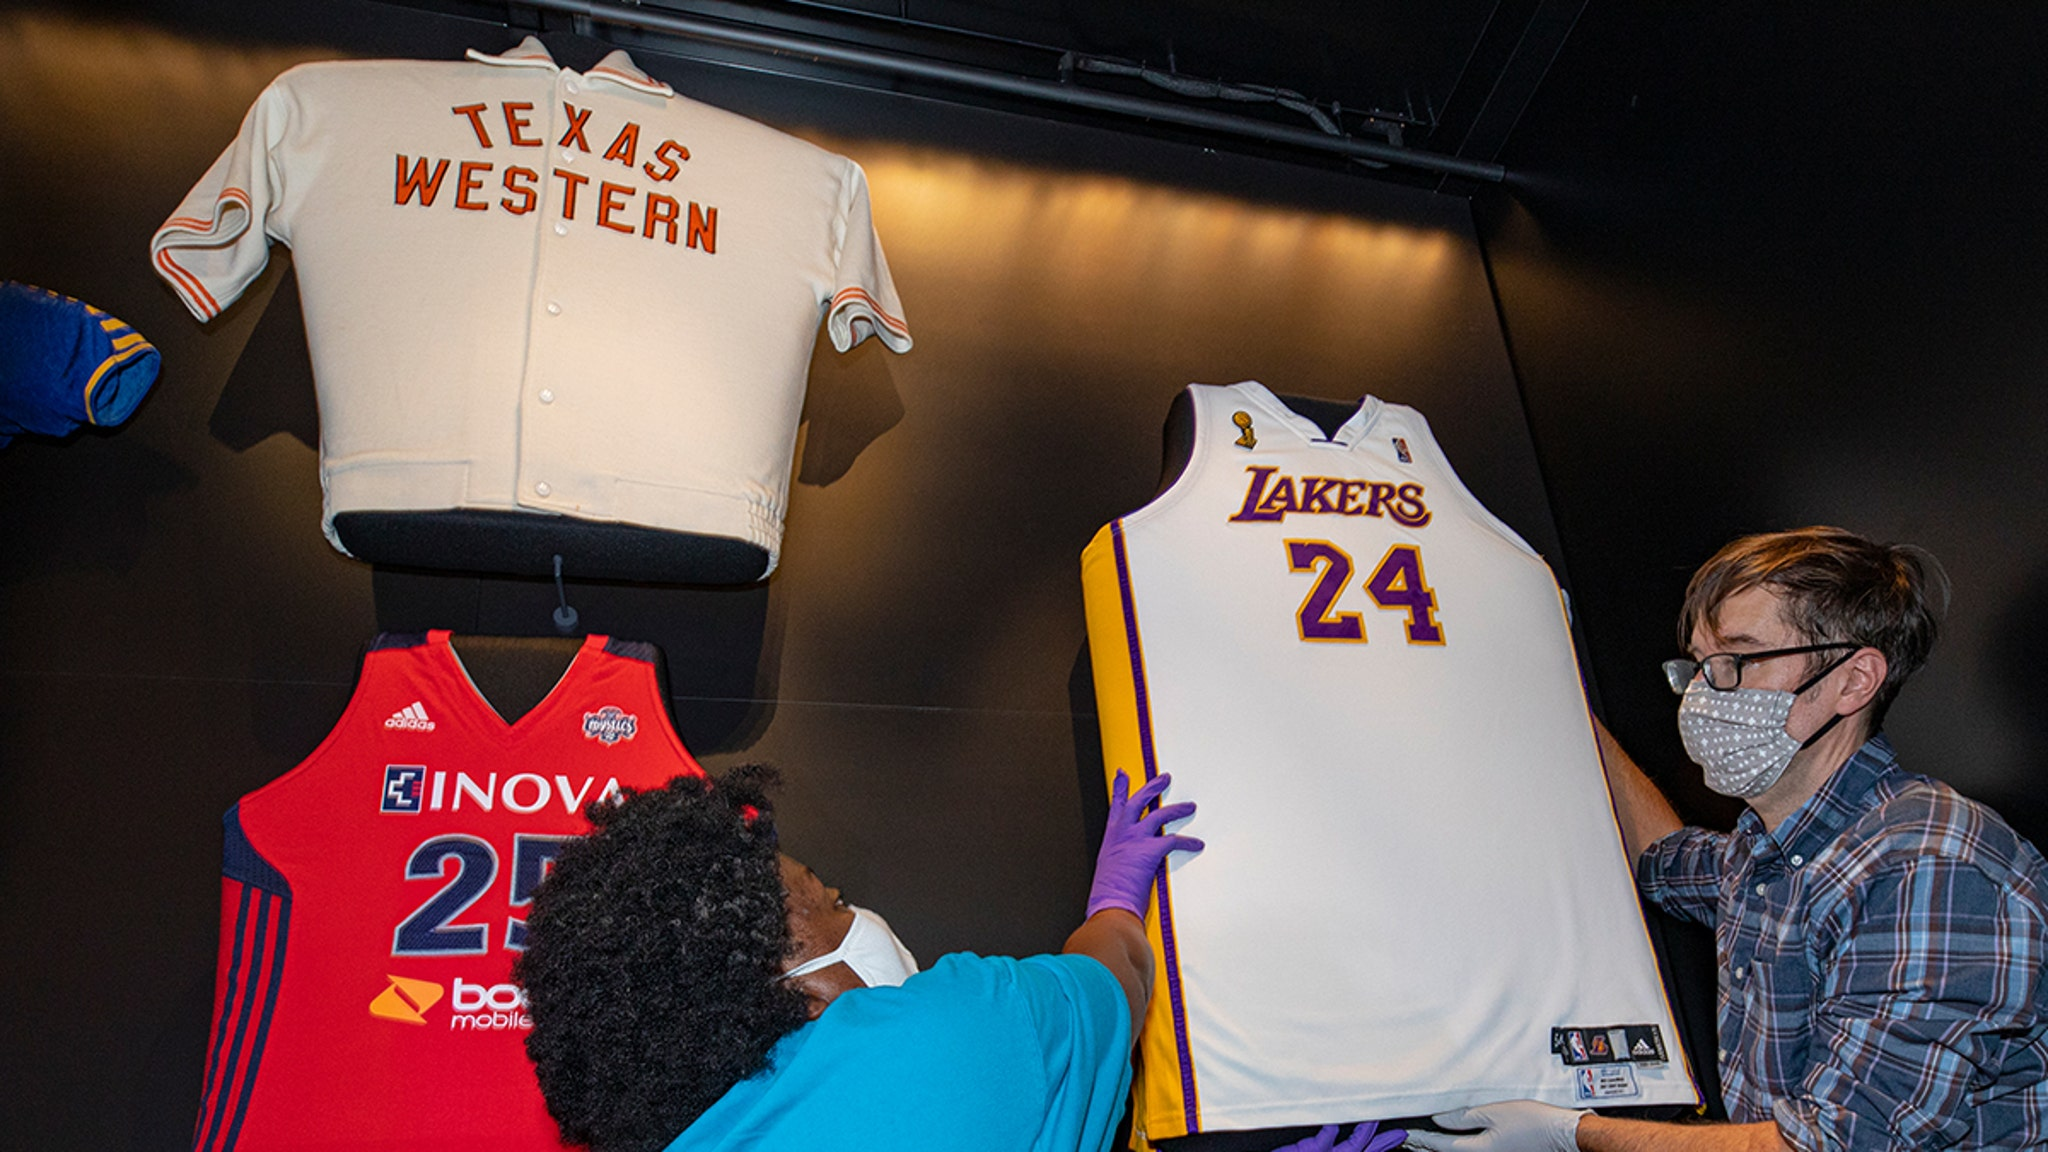 Kobe Bryant '08 NBA Finals Jersey Displayed At Smithsonian's African American History Museum